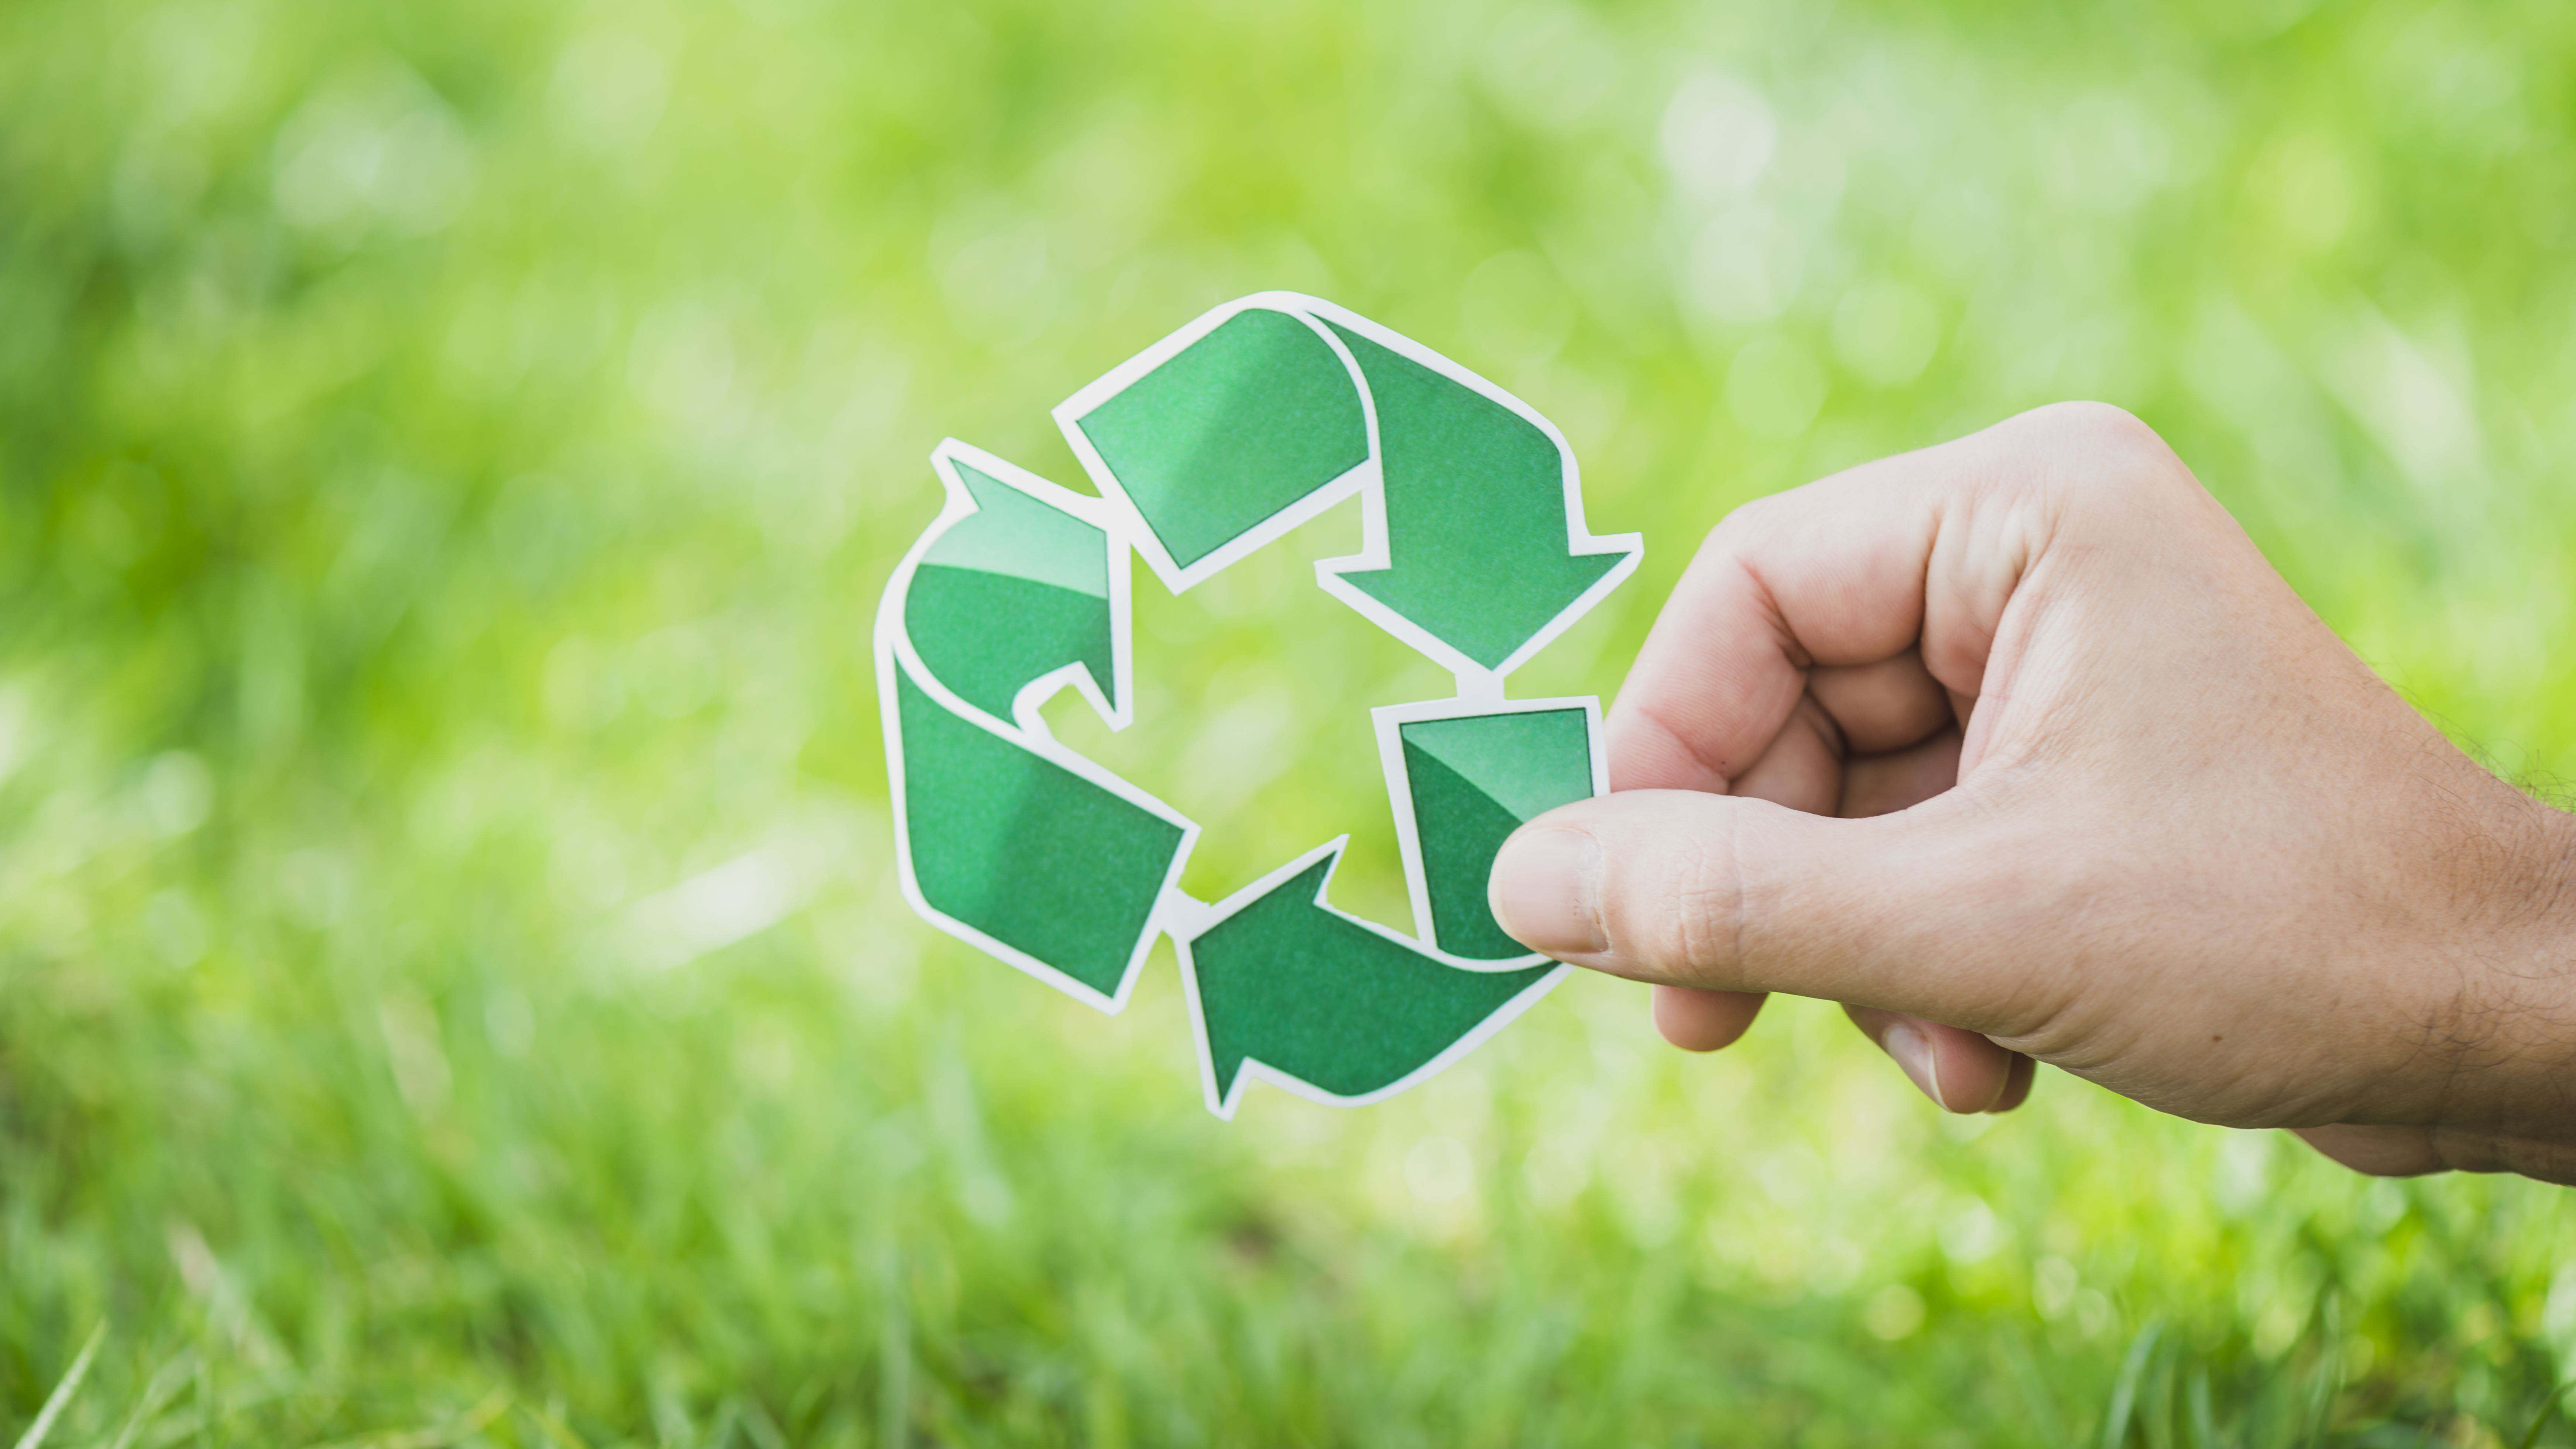 hand-holding-recycle-symbol-against-green-grass.jpg